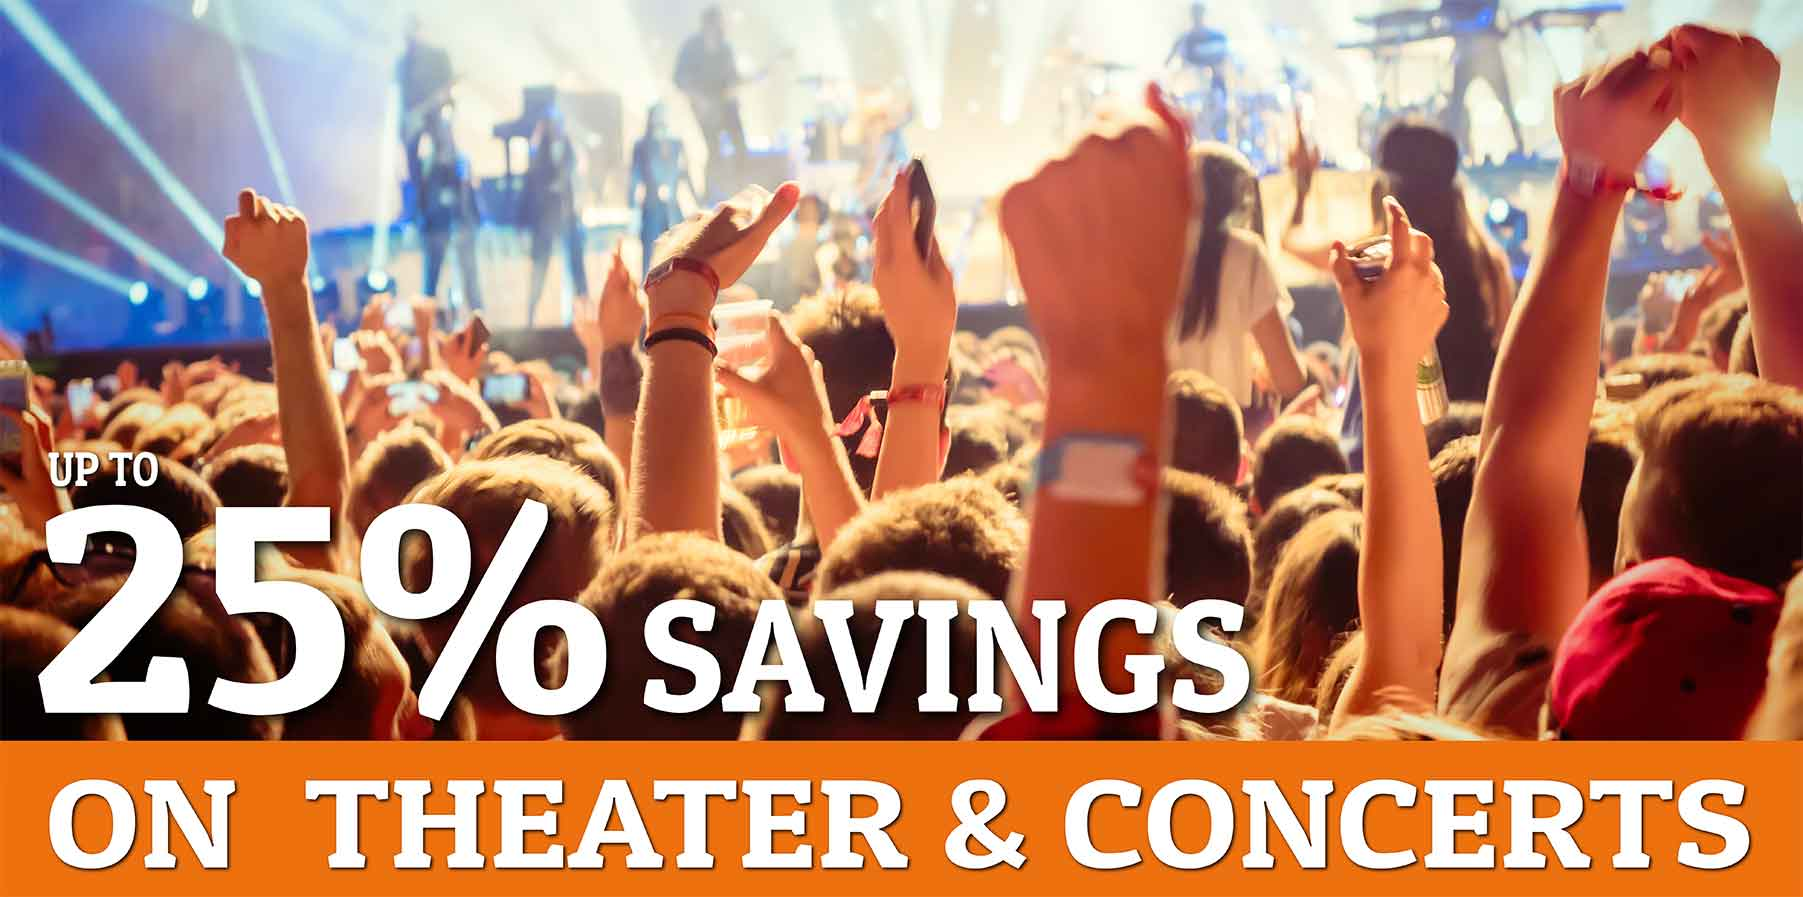 Theater Ticket Discounts